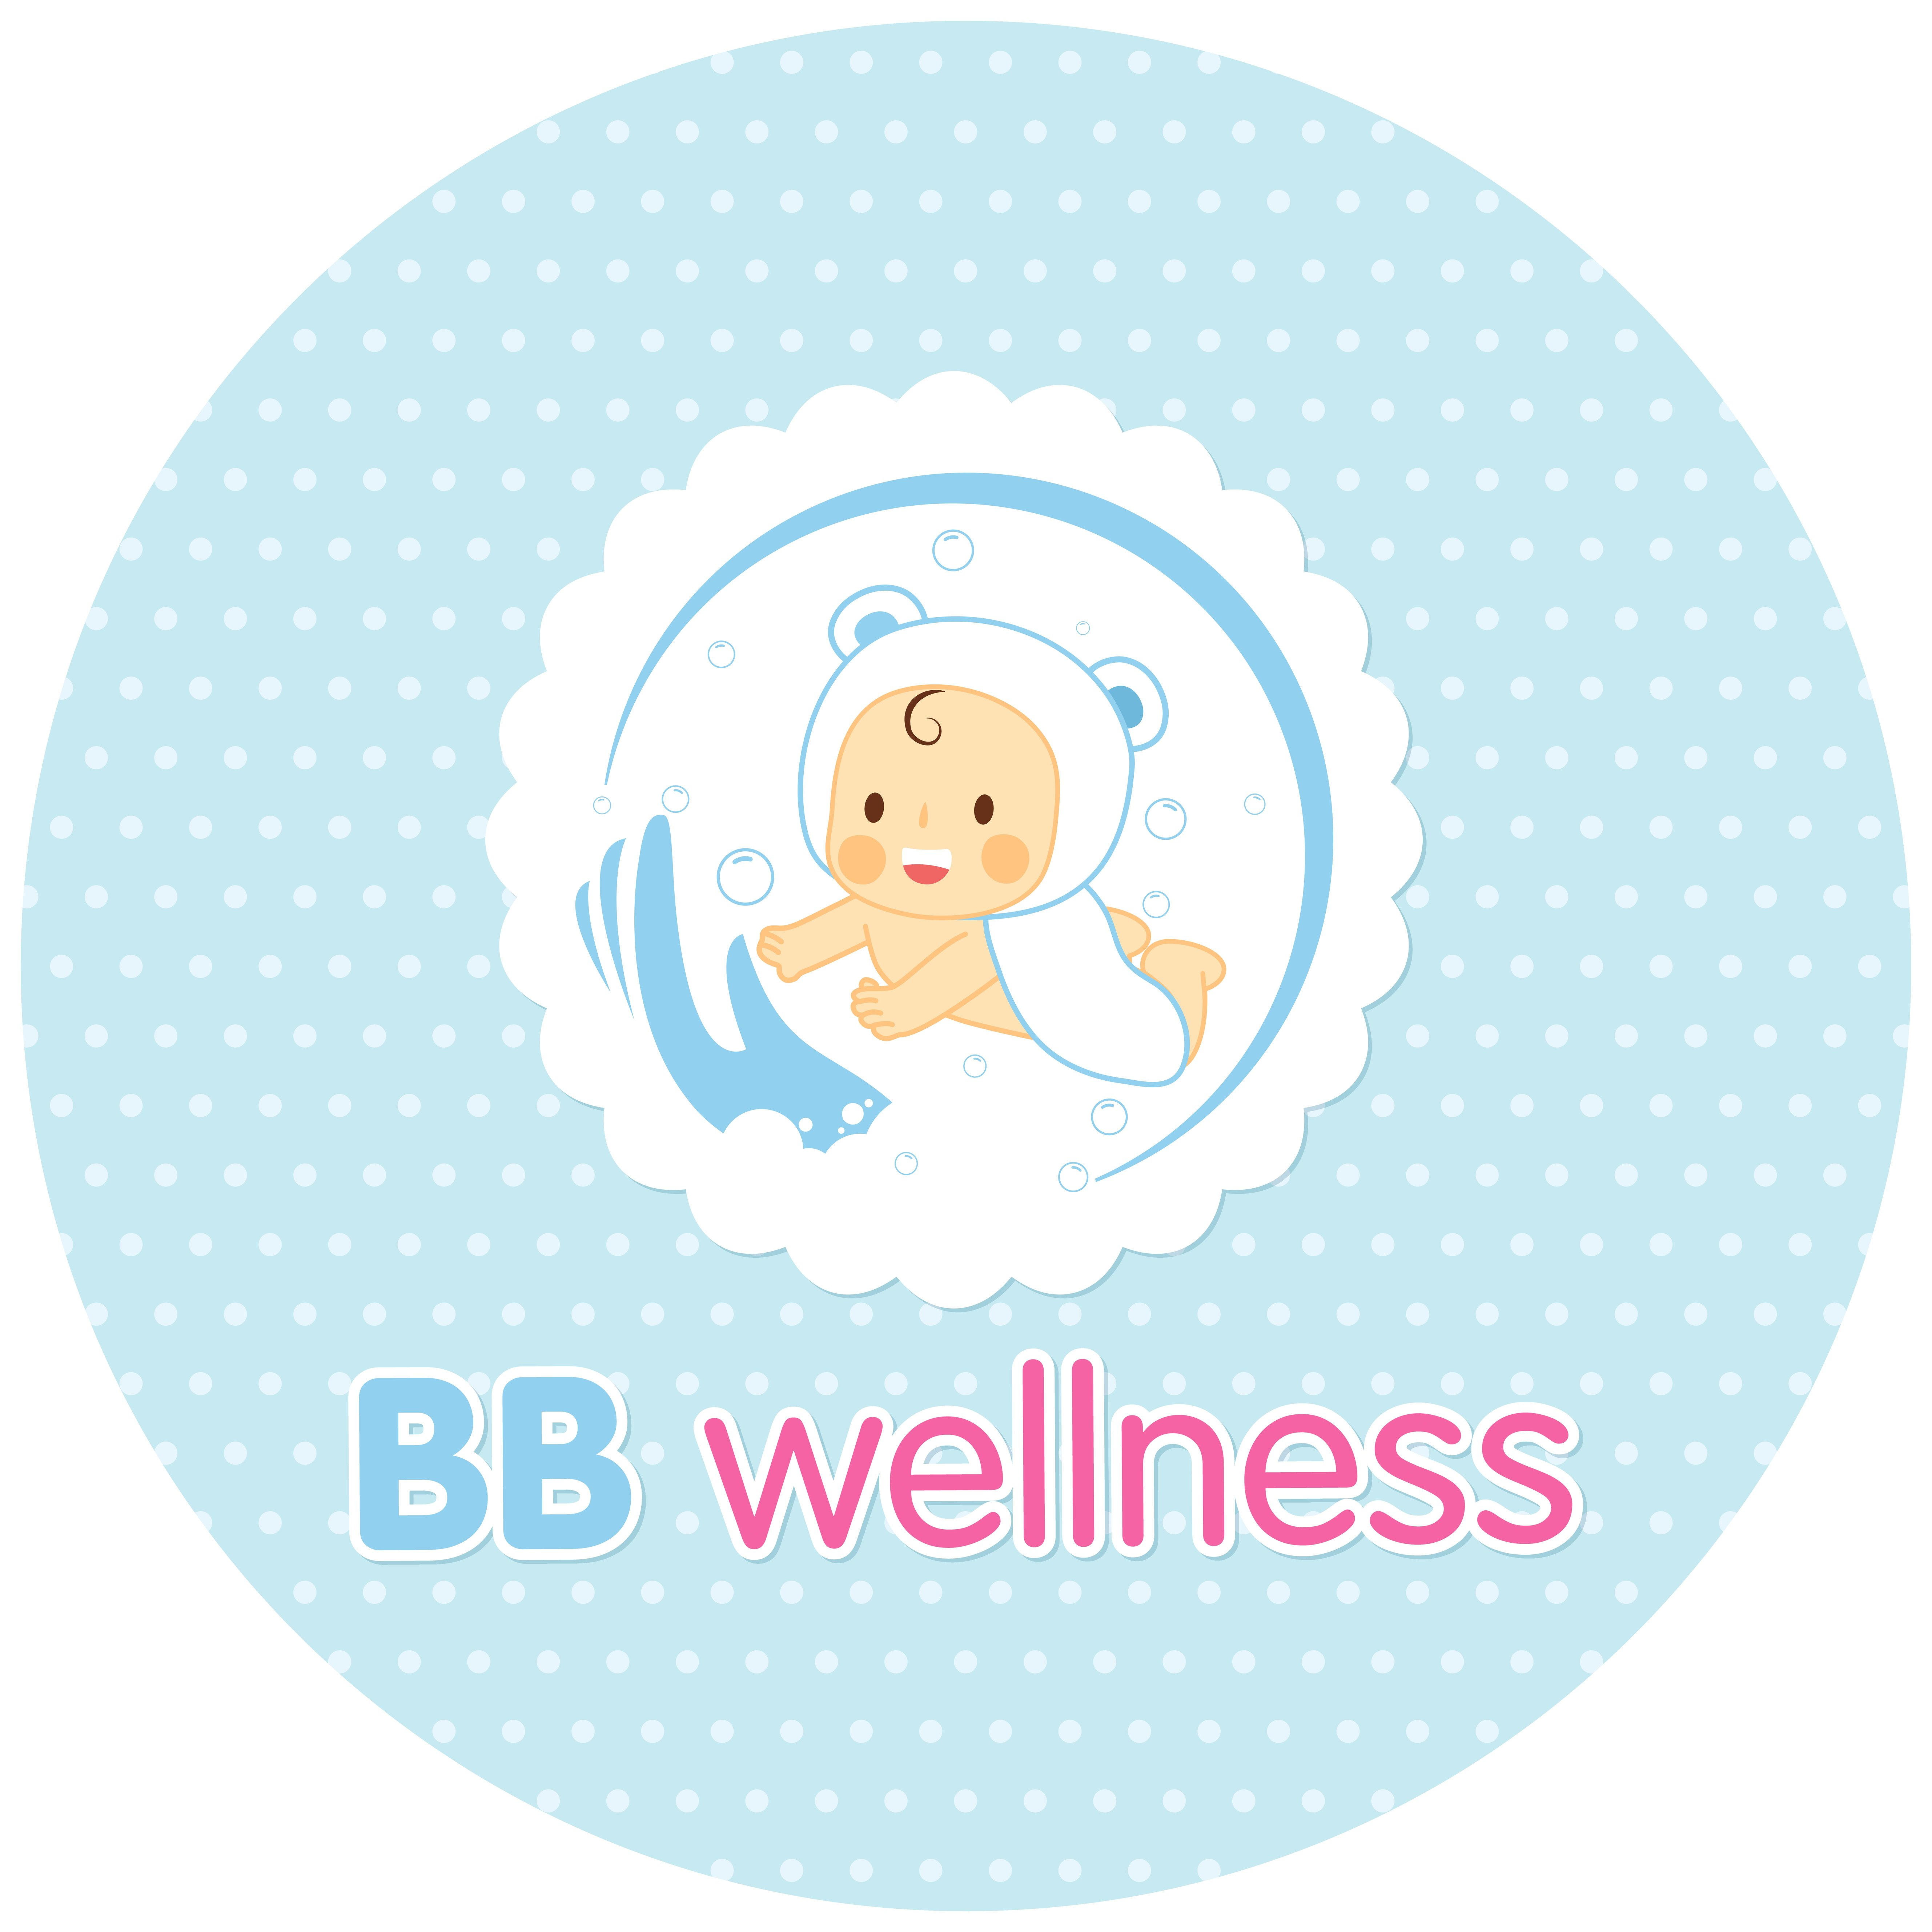 BB Wellness